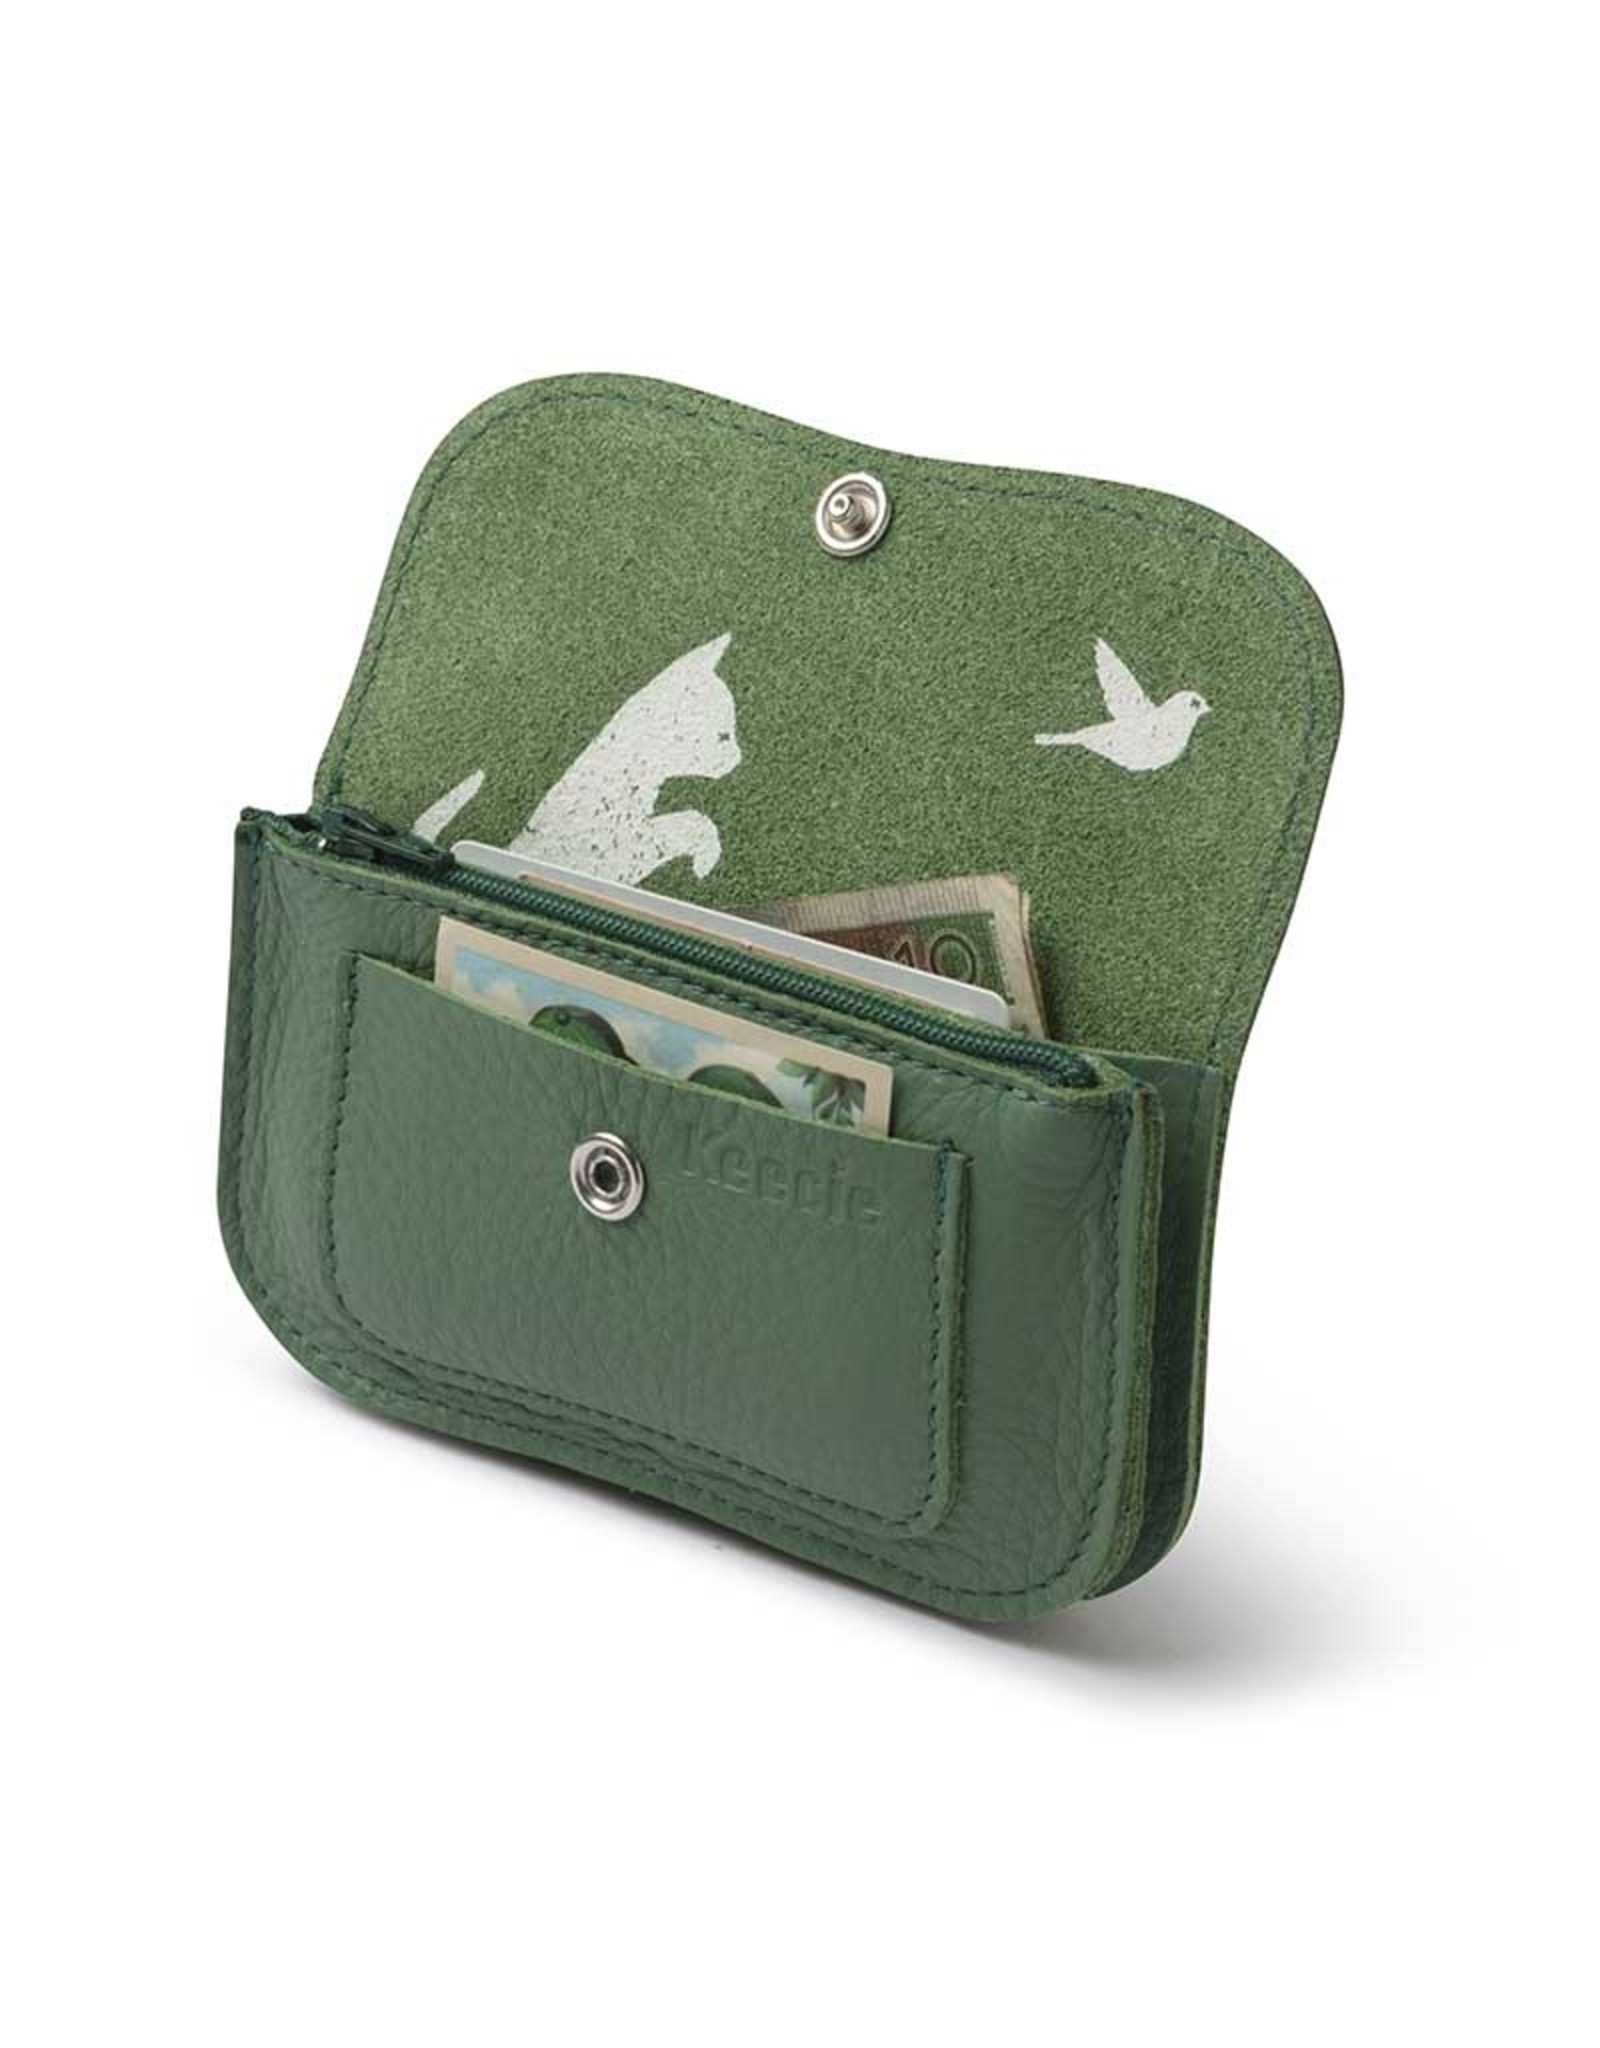 Keecie Cat chase small wallet forest